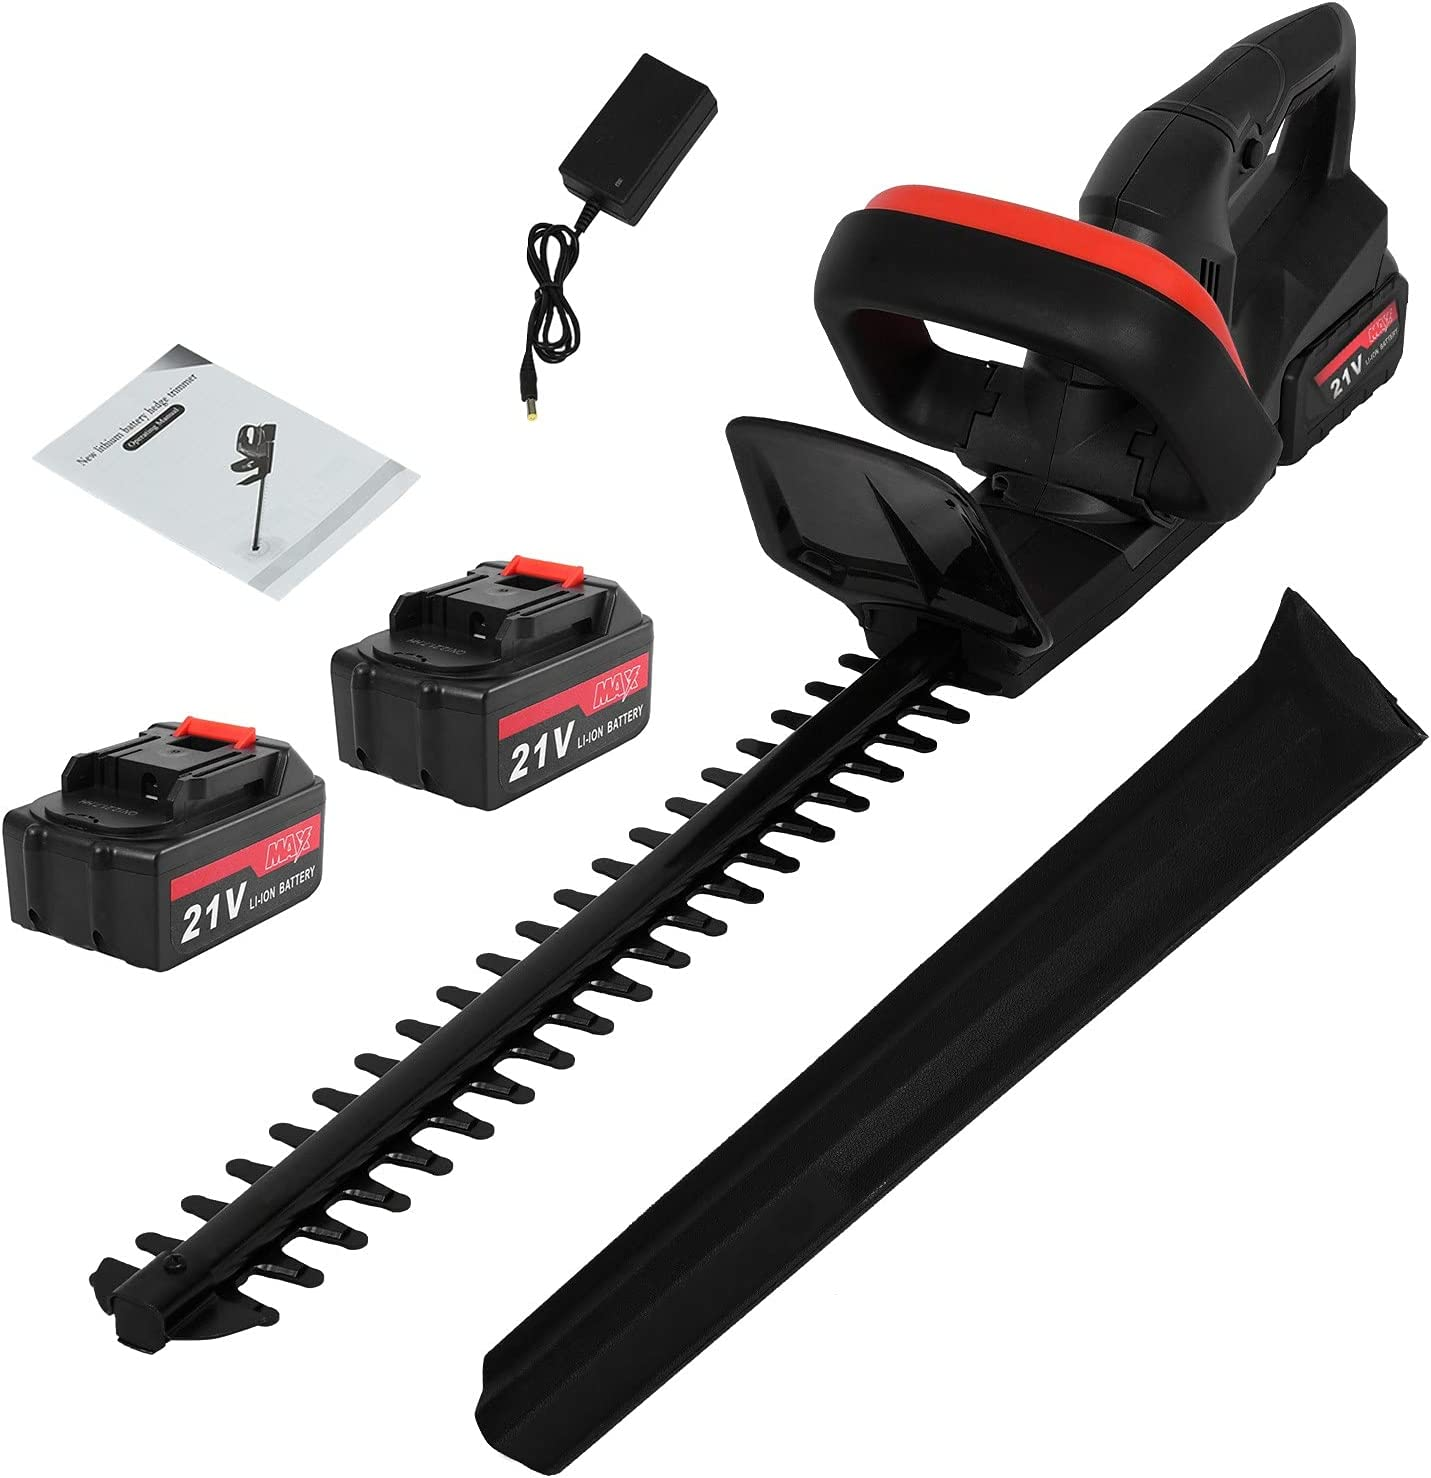 JOSHUA 21V Cordless Electric Hedge B Daily bargain sale with Li-Ion Trimmer NEW before selling ☆ 6000mAh